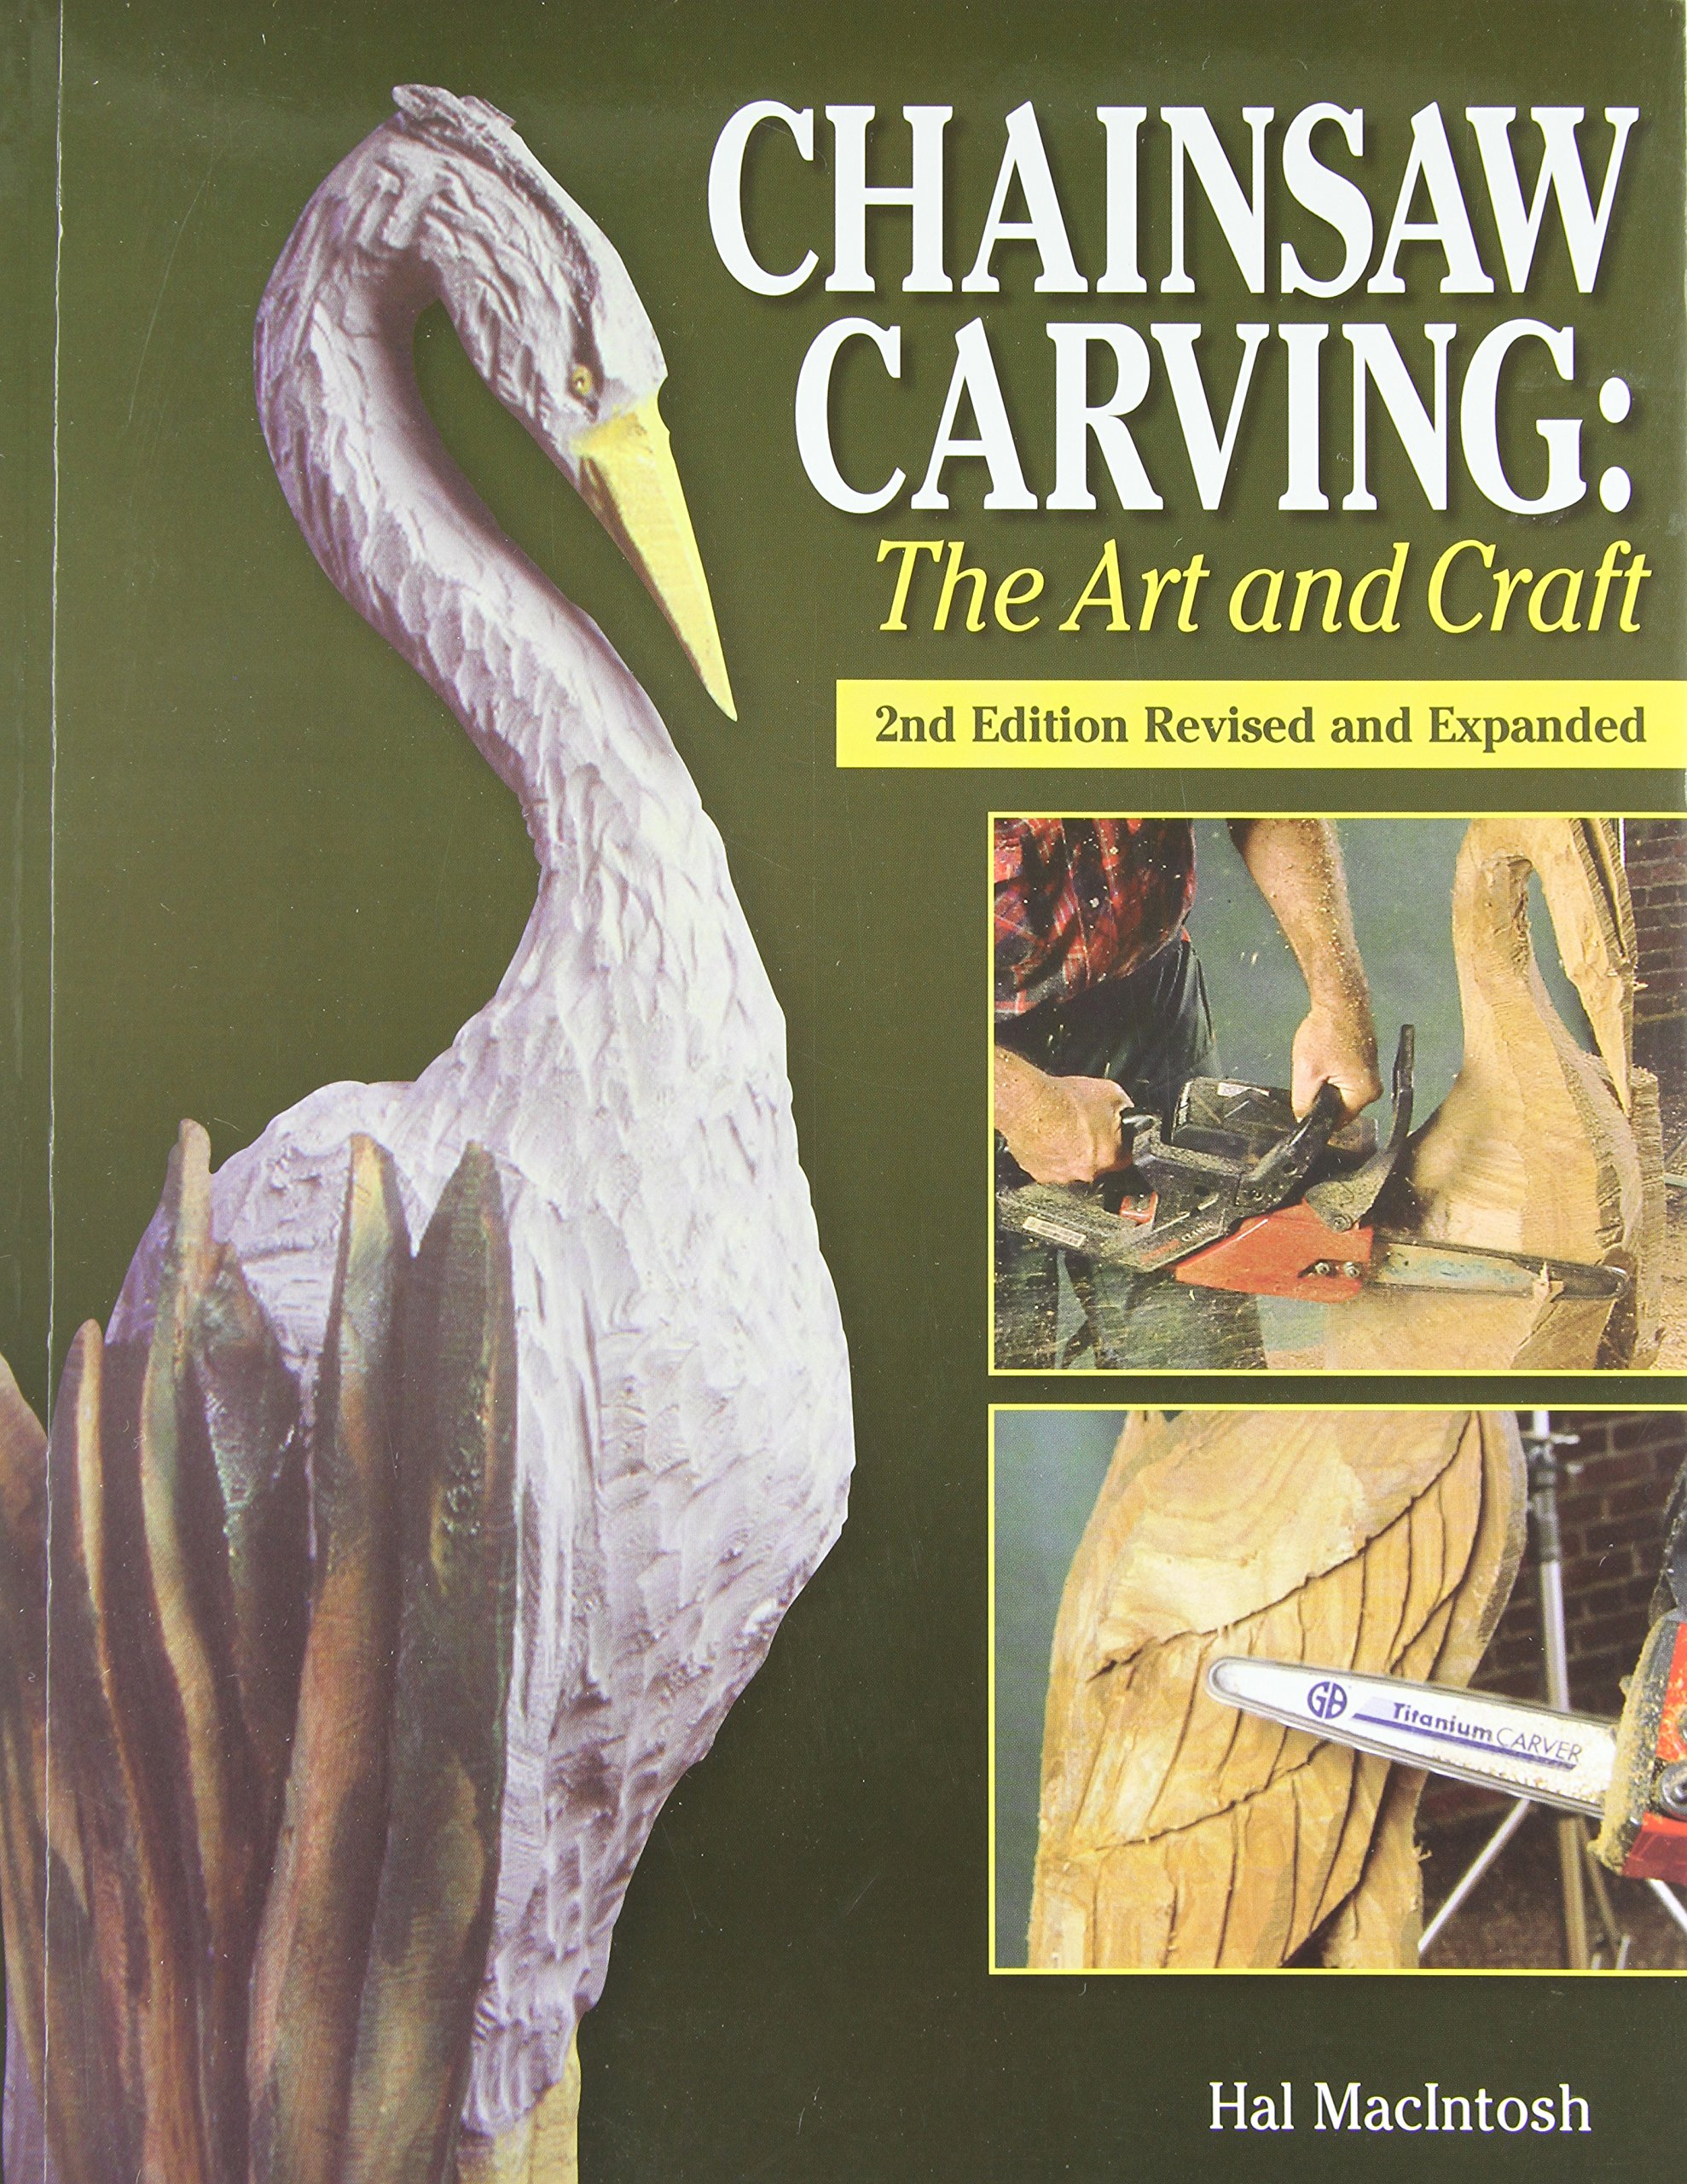 Chainsaw carving the art and craft amazon hal macintosh